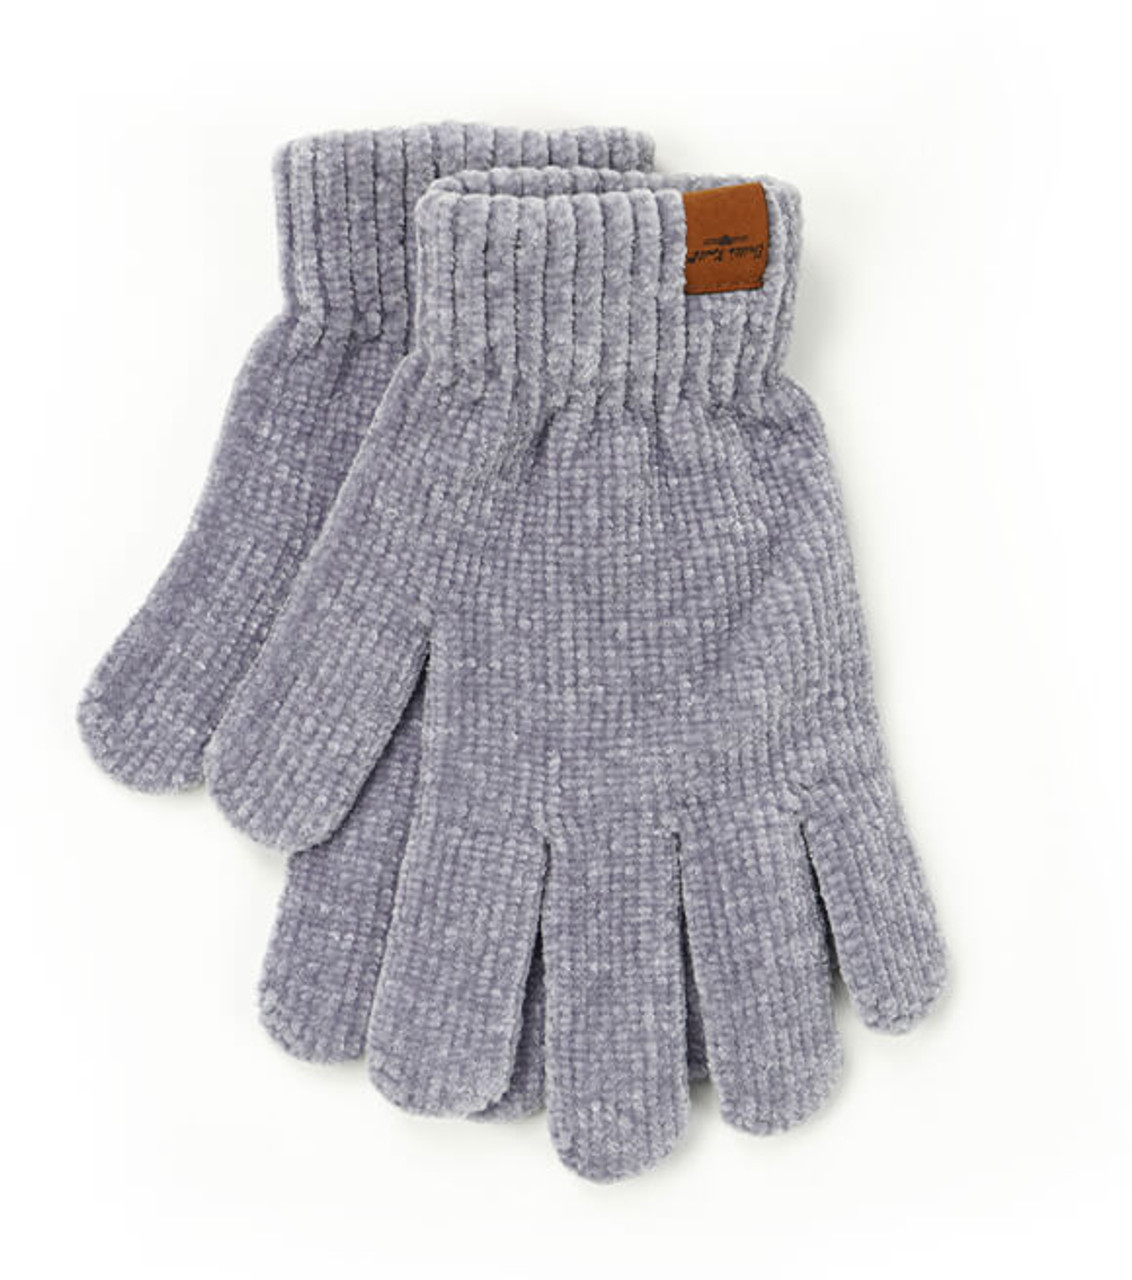 Ultra-soft gray chenille gloves with extended wrist cuffs; all the warmth without the weight. One size fits most.